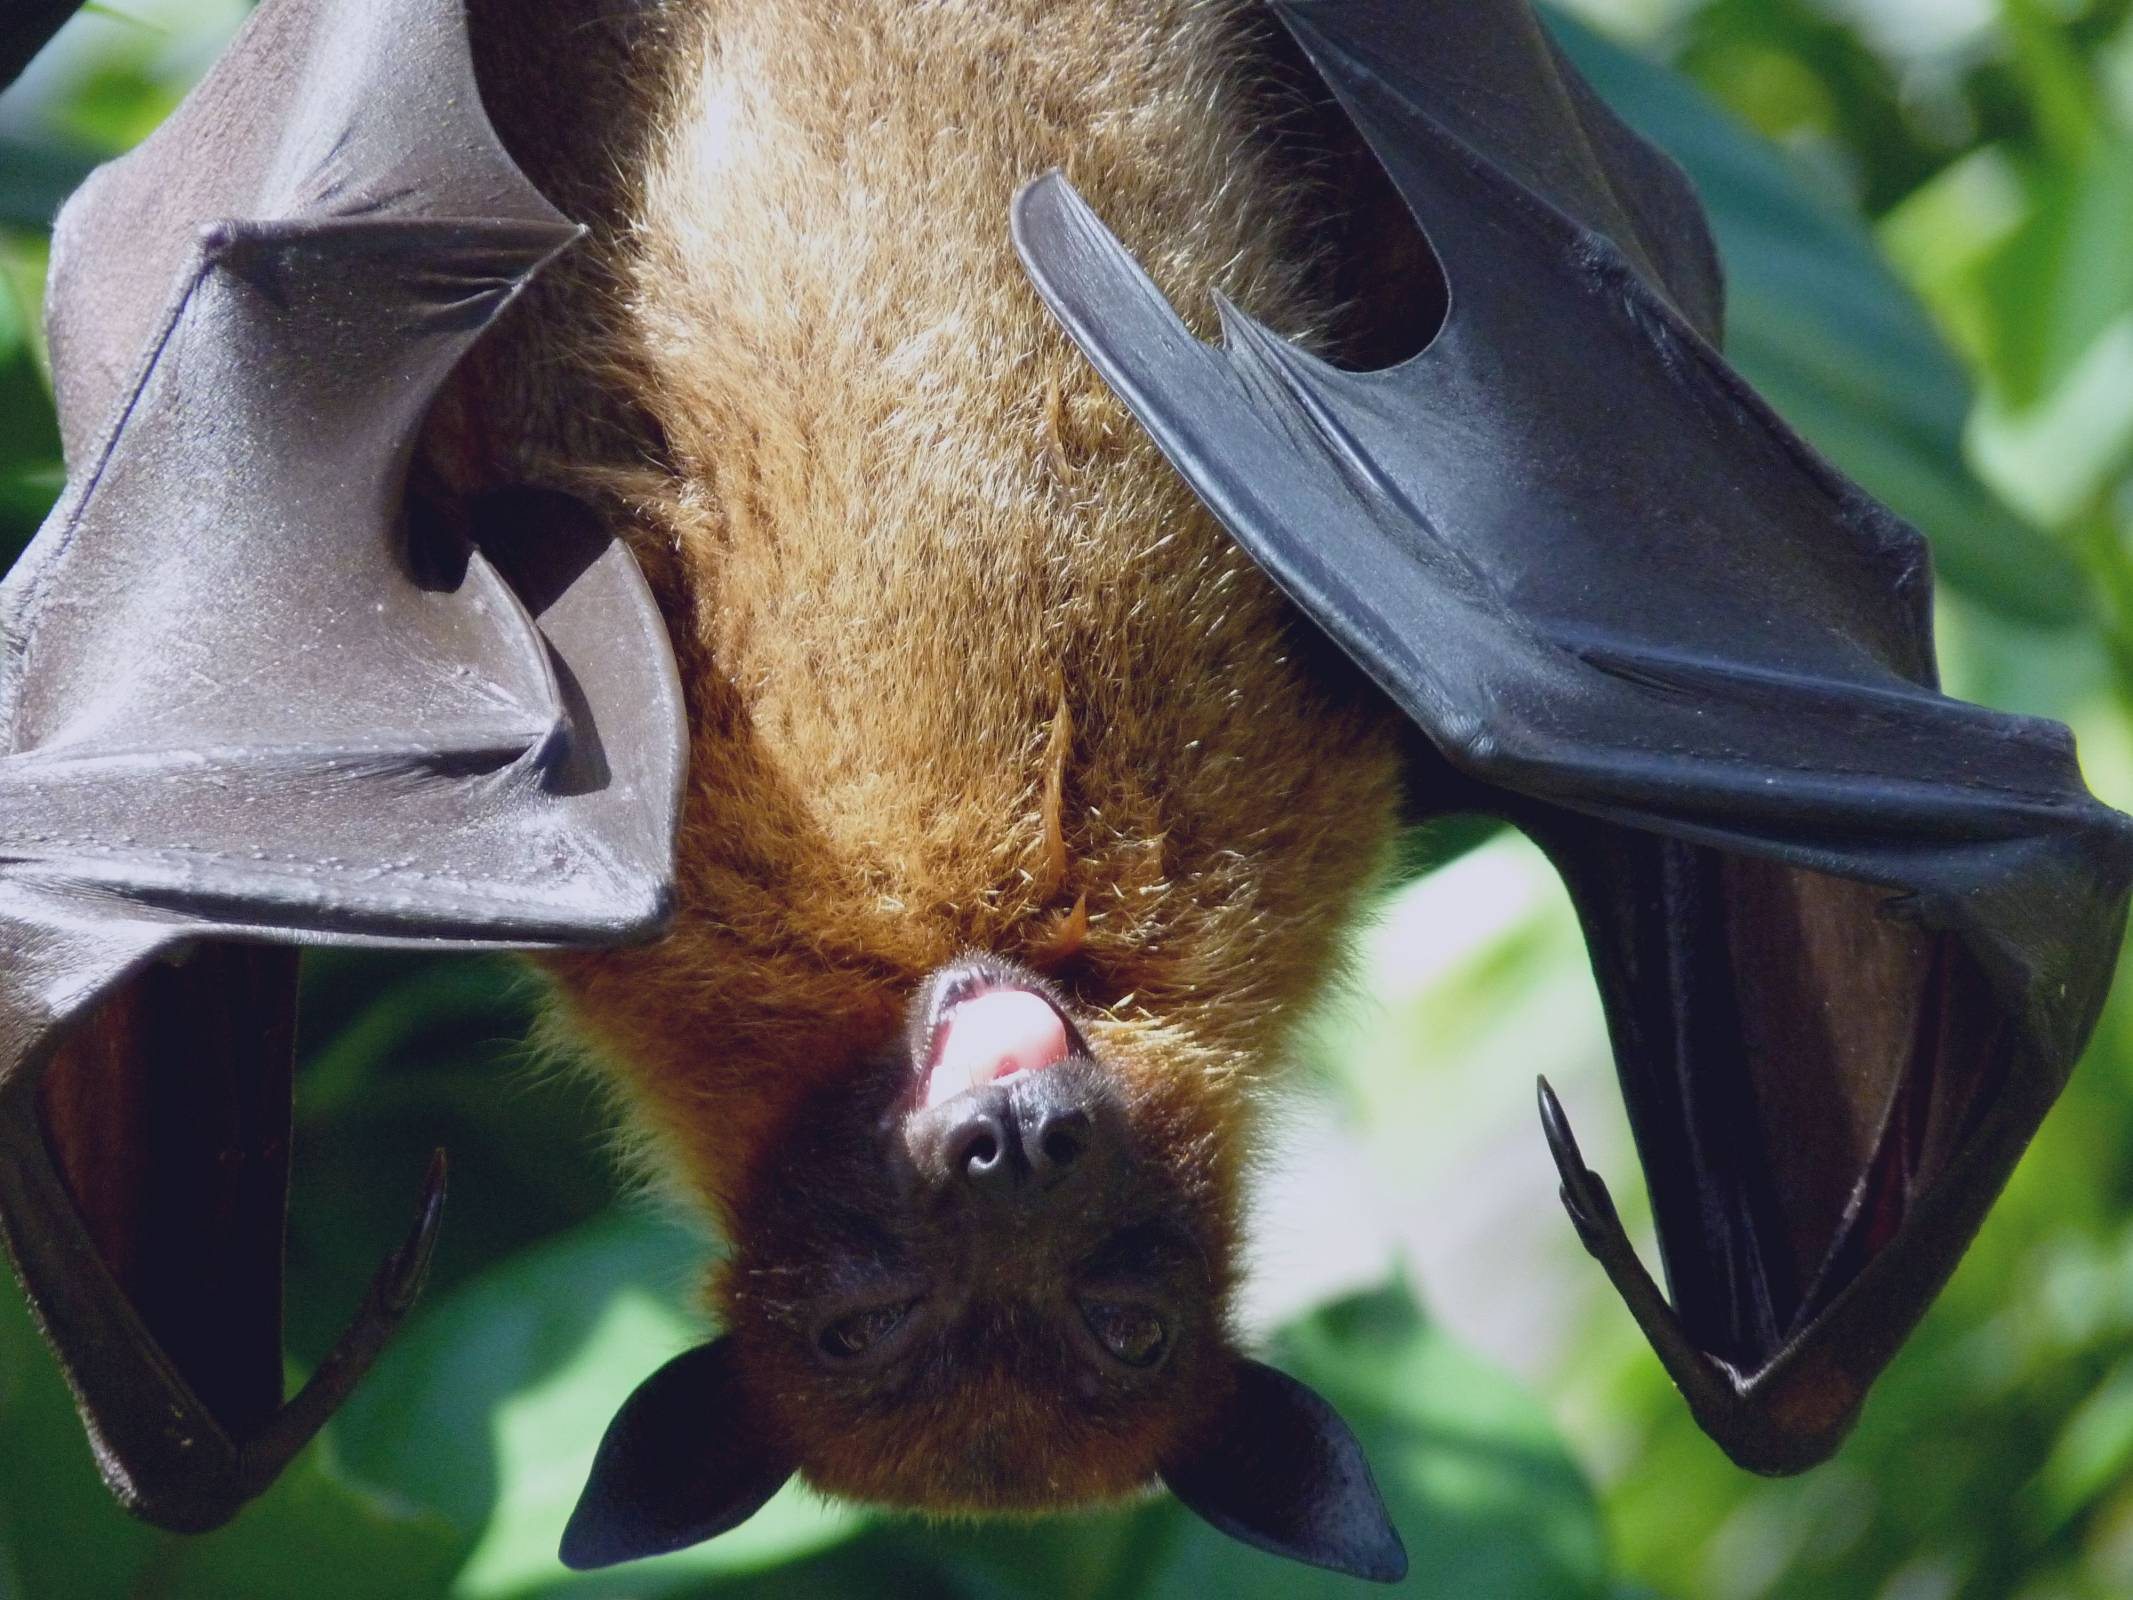 Bats Not Dogs Pose Greatest Rabies Risk in the USA ...